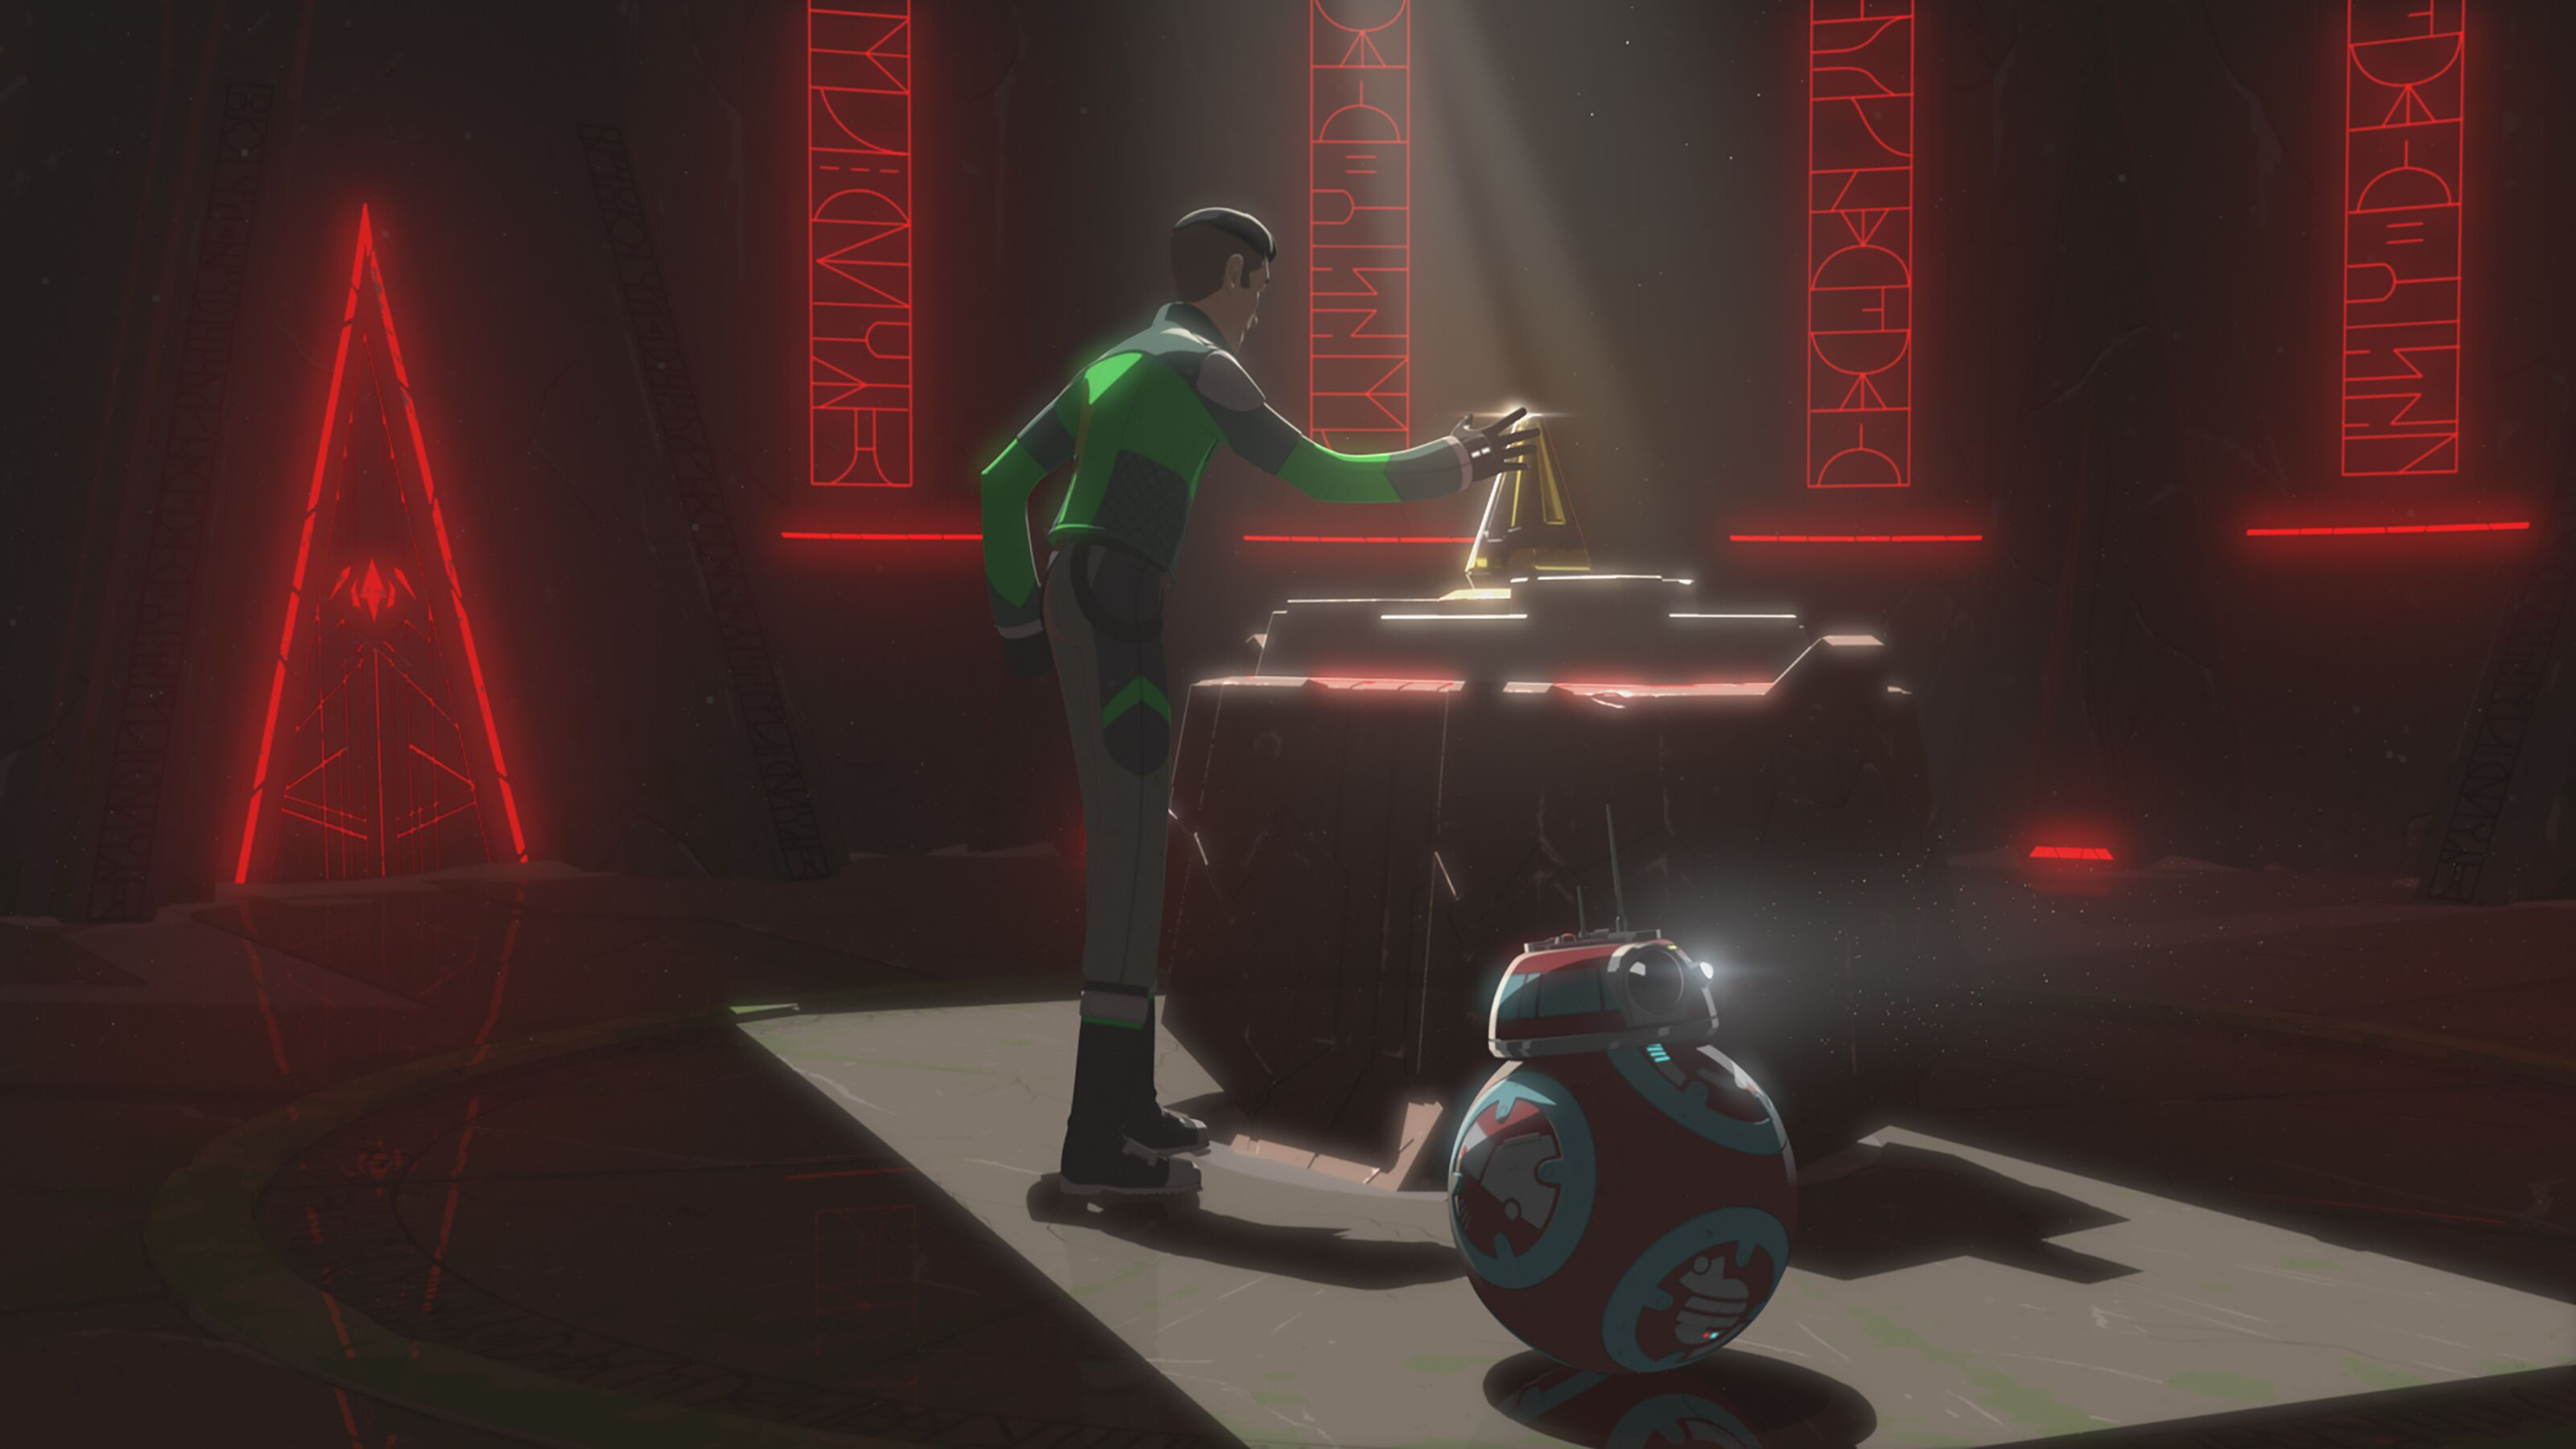 Star Wars Resistance recap: What did Kaz find in the Sith Temple?